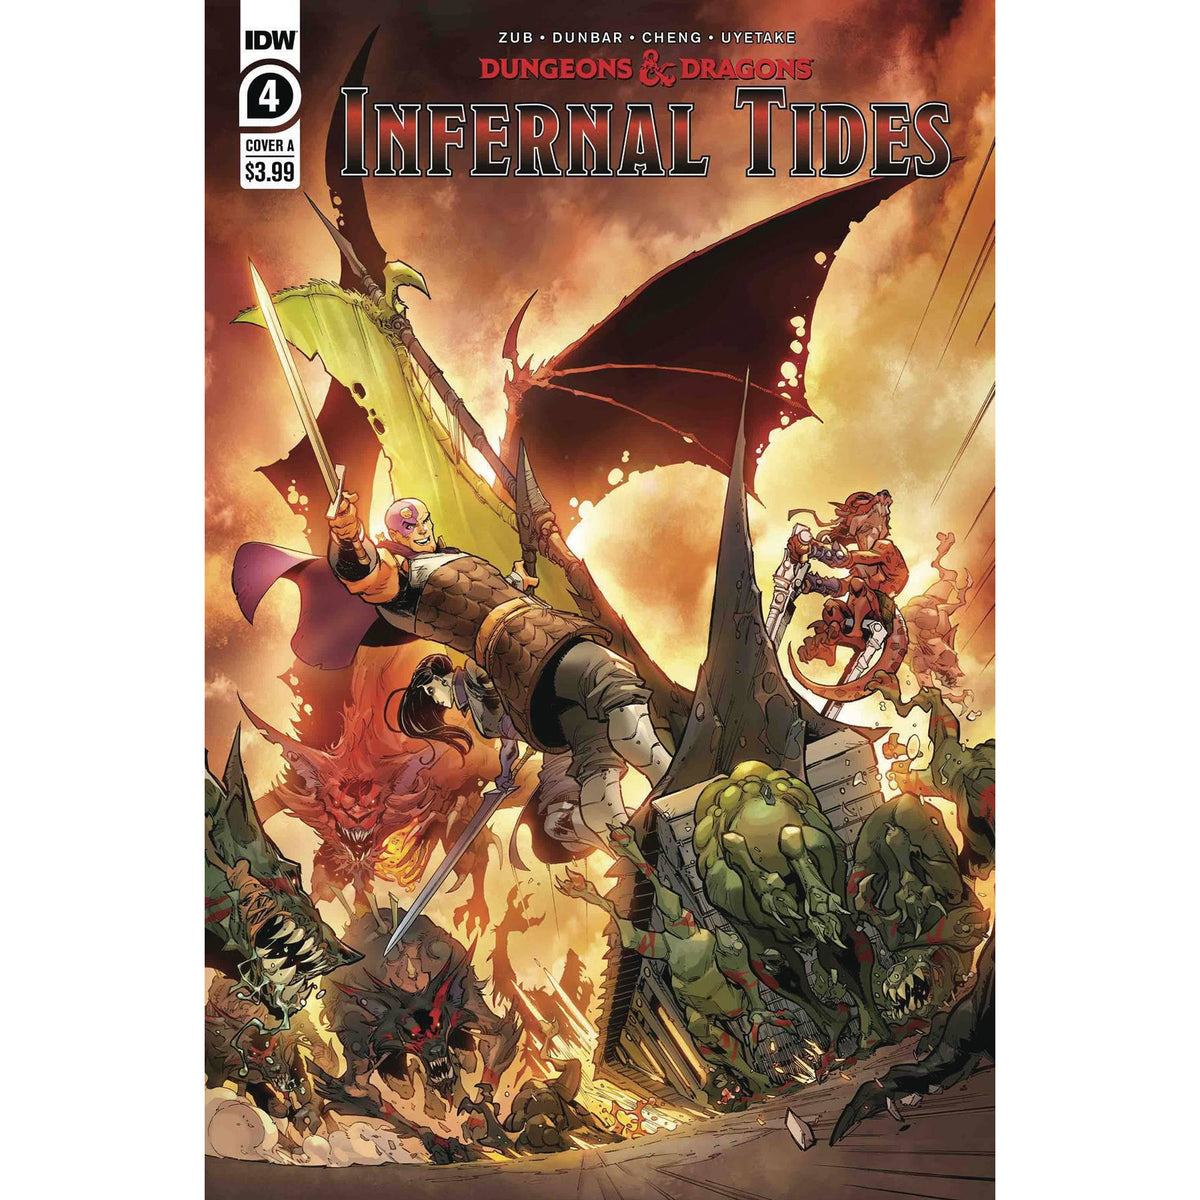 DUNGEONS & DRAGONS INFERNAL TIDES #4 (OF 5) - DUNBAR COVER A